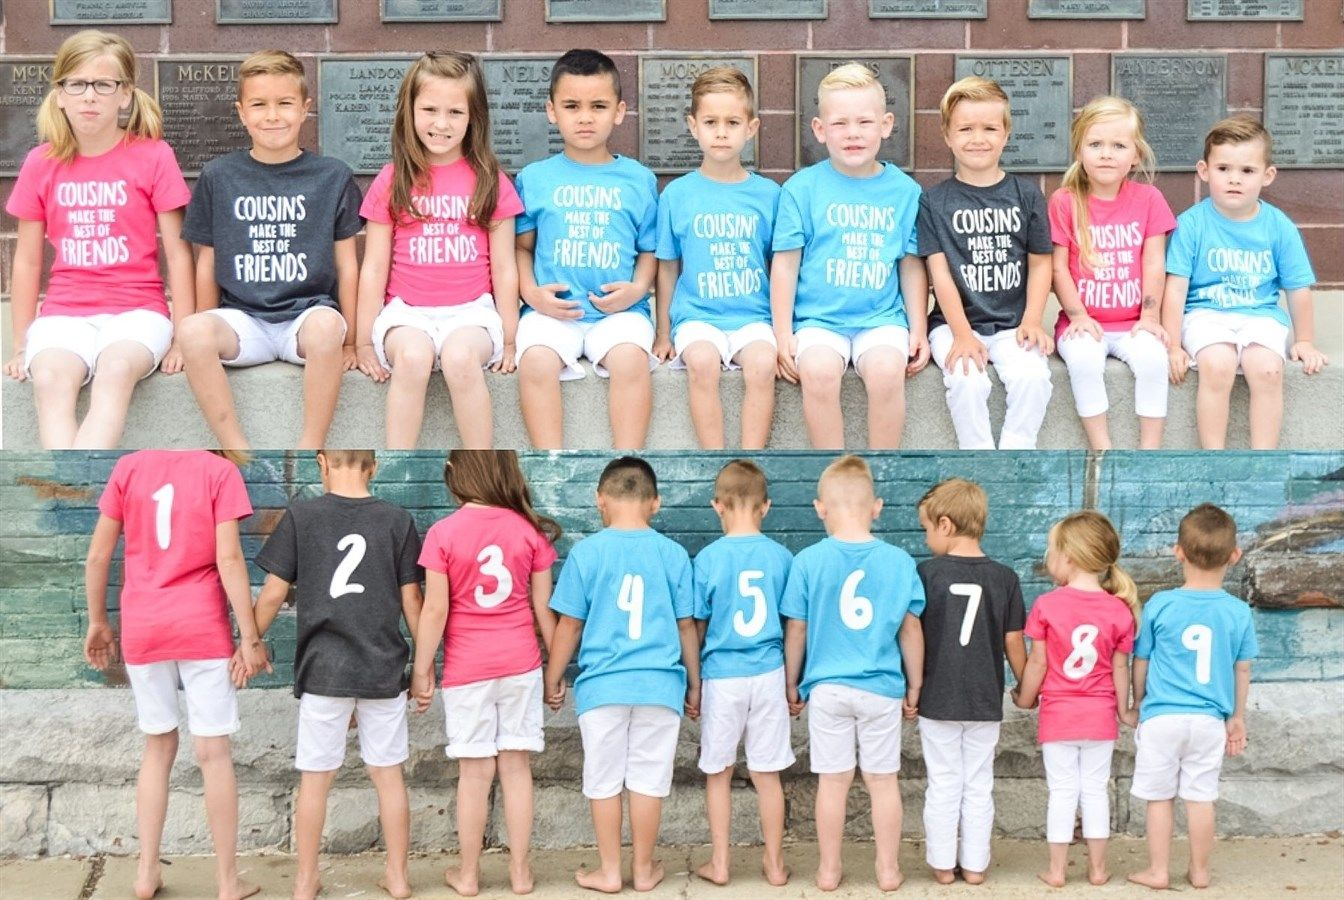 Pin on kids wear. Cousins clipart group child